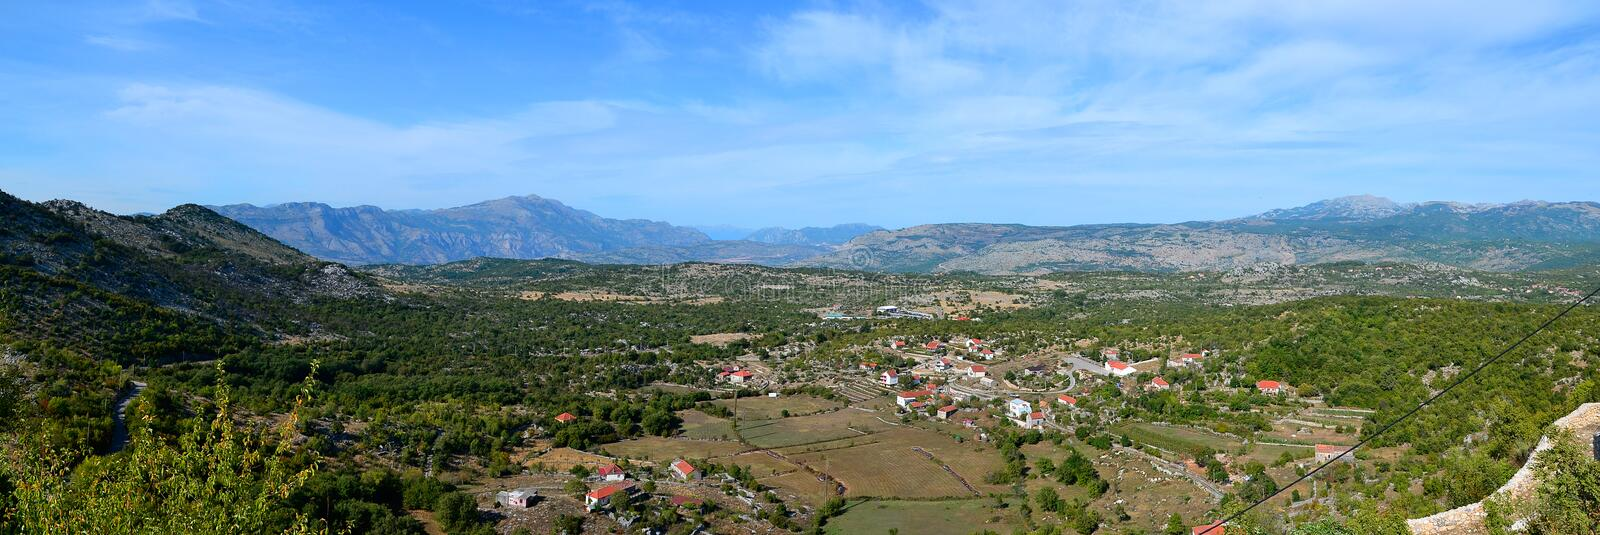 Panoramic view from Old Town MedunMedeon near Podgorica, Montenegro. Medun is a settlement located 13 km northeast of the capital Podgorica, Montenegro. The stock photos